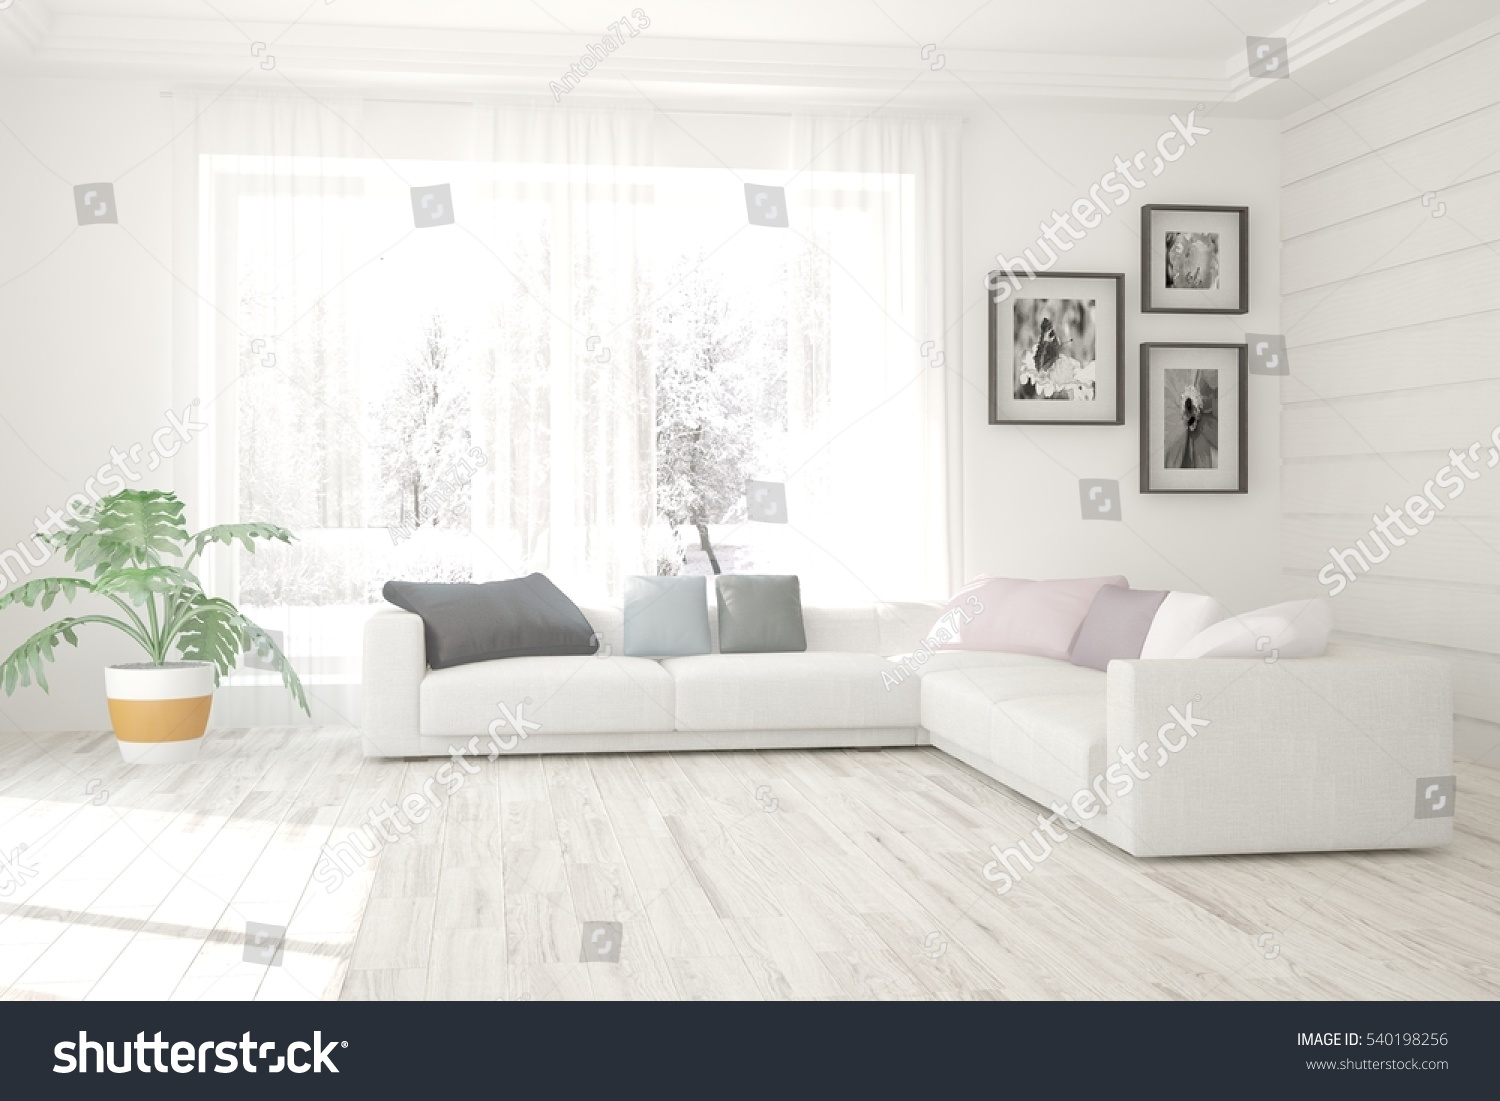 White living room interior sofa winter stock illustration for White interior design living room